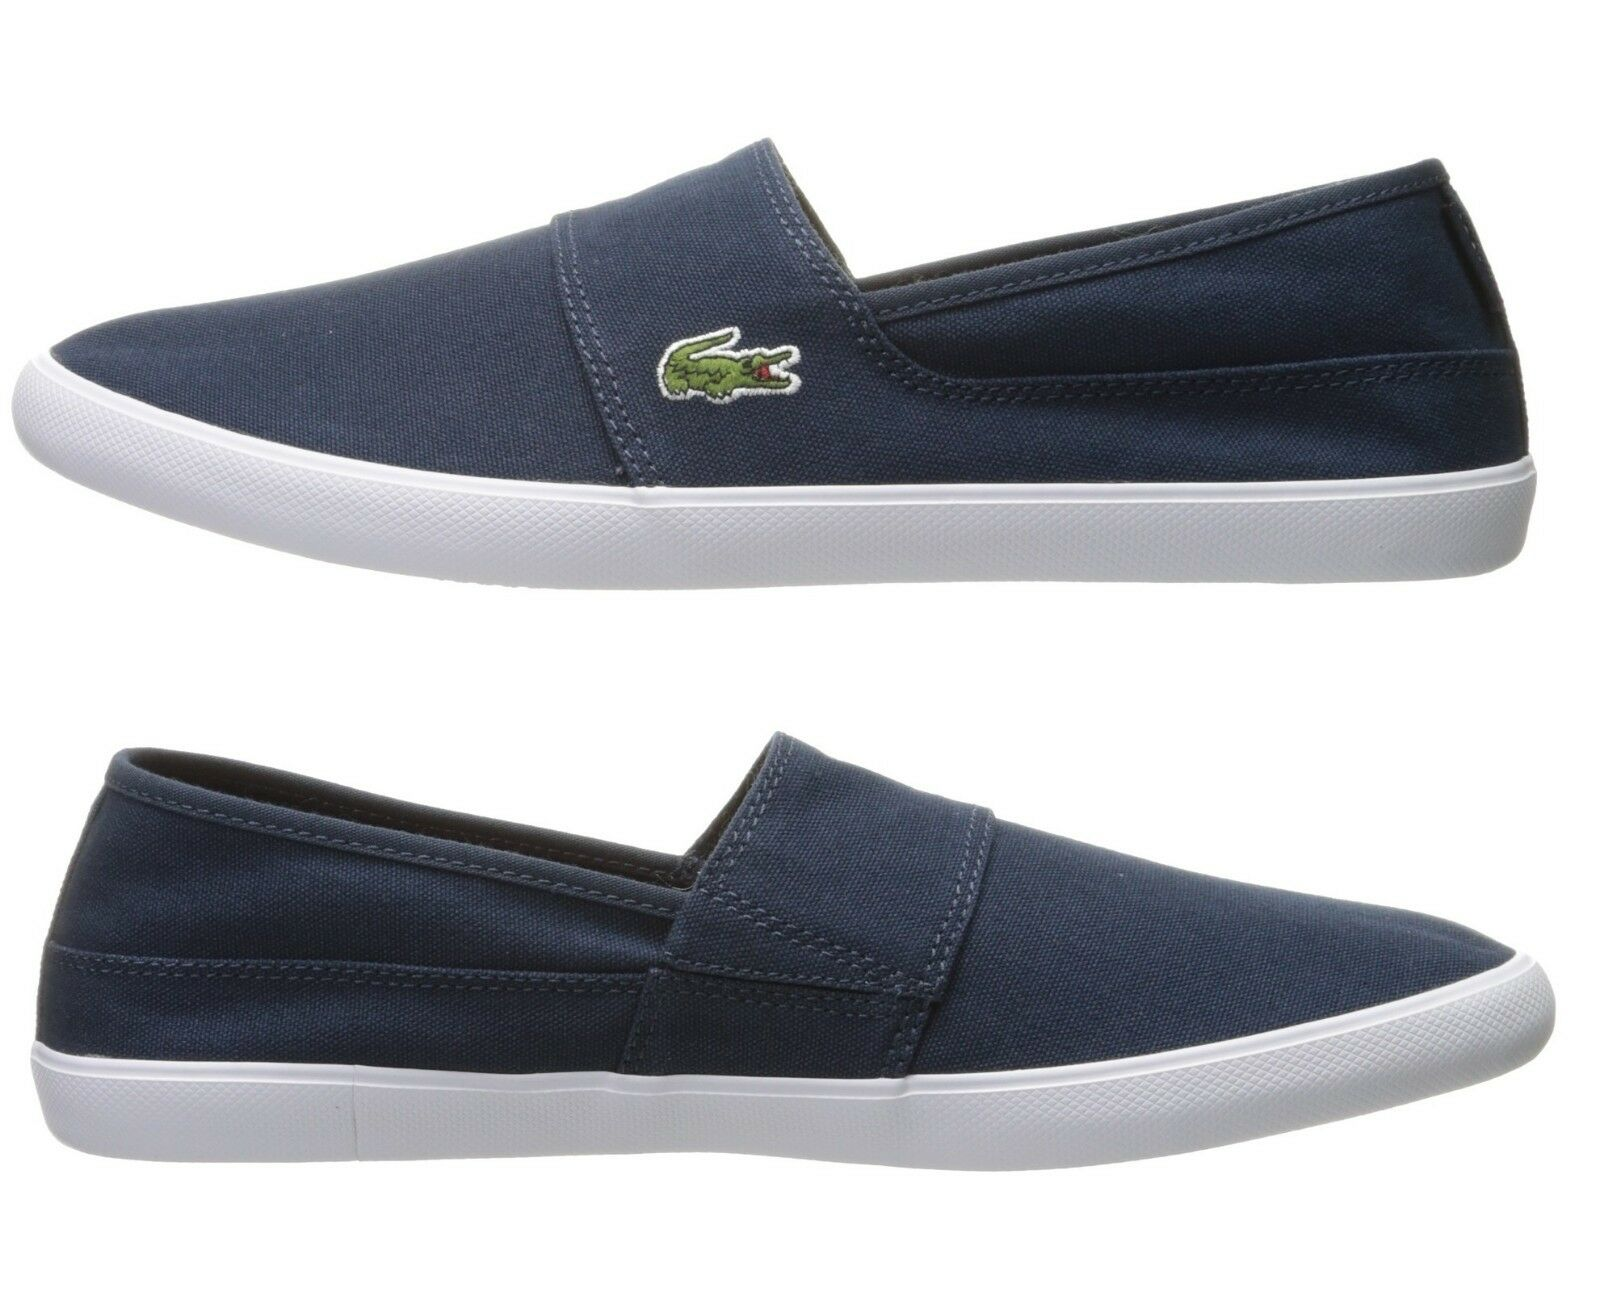 Lacoste Marice BL 2 Men's Croc Logo Casual Slip On Loafer shoes Sneakers Blue 1